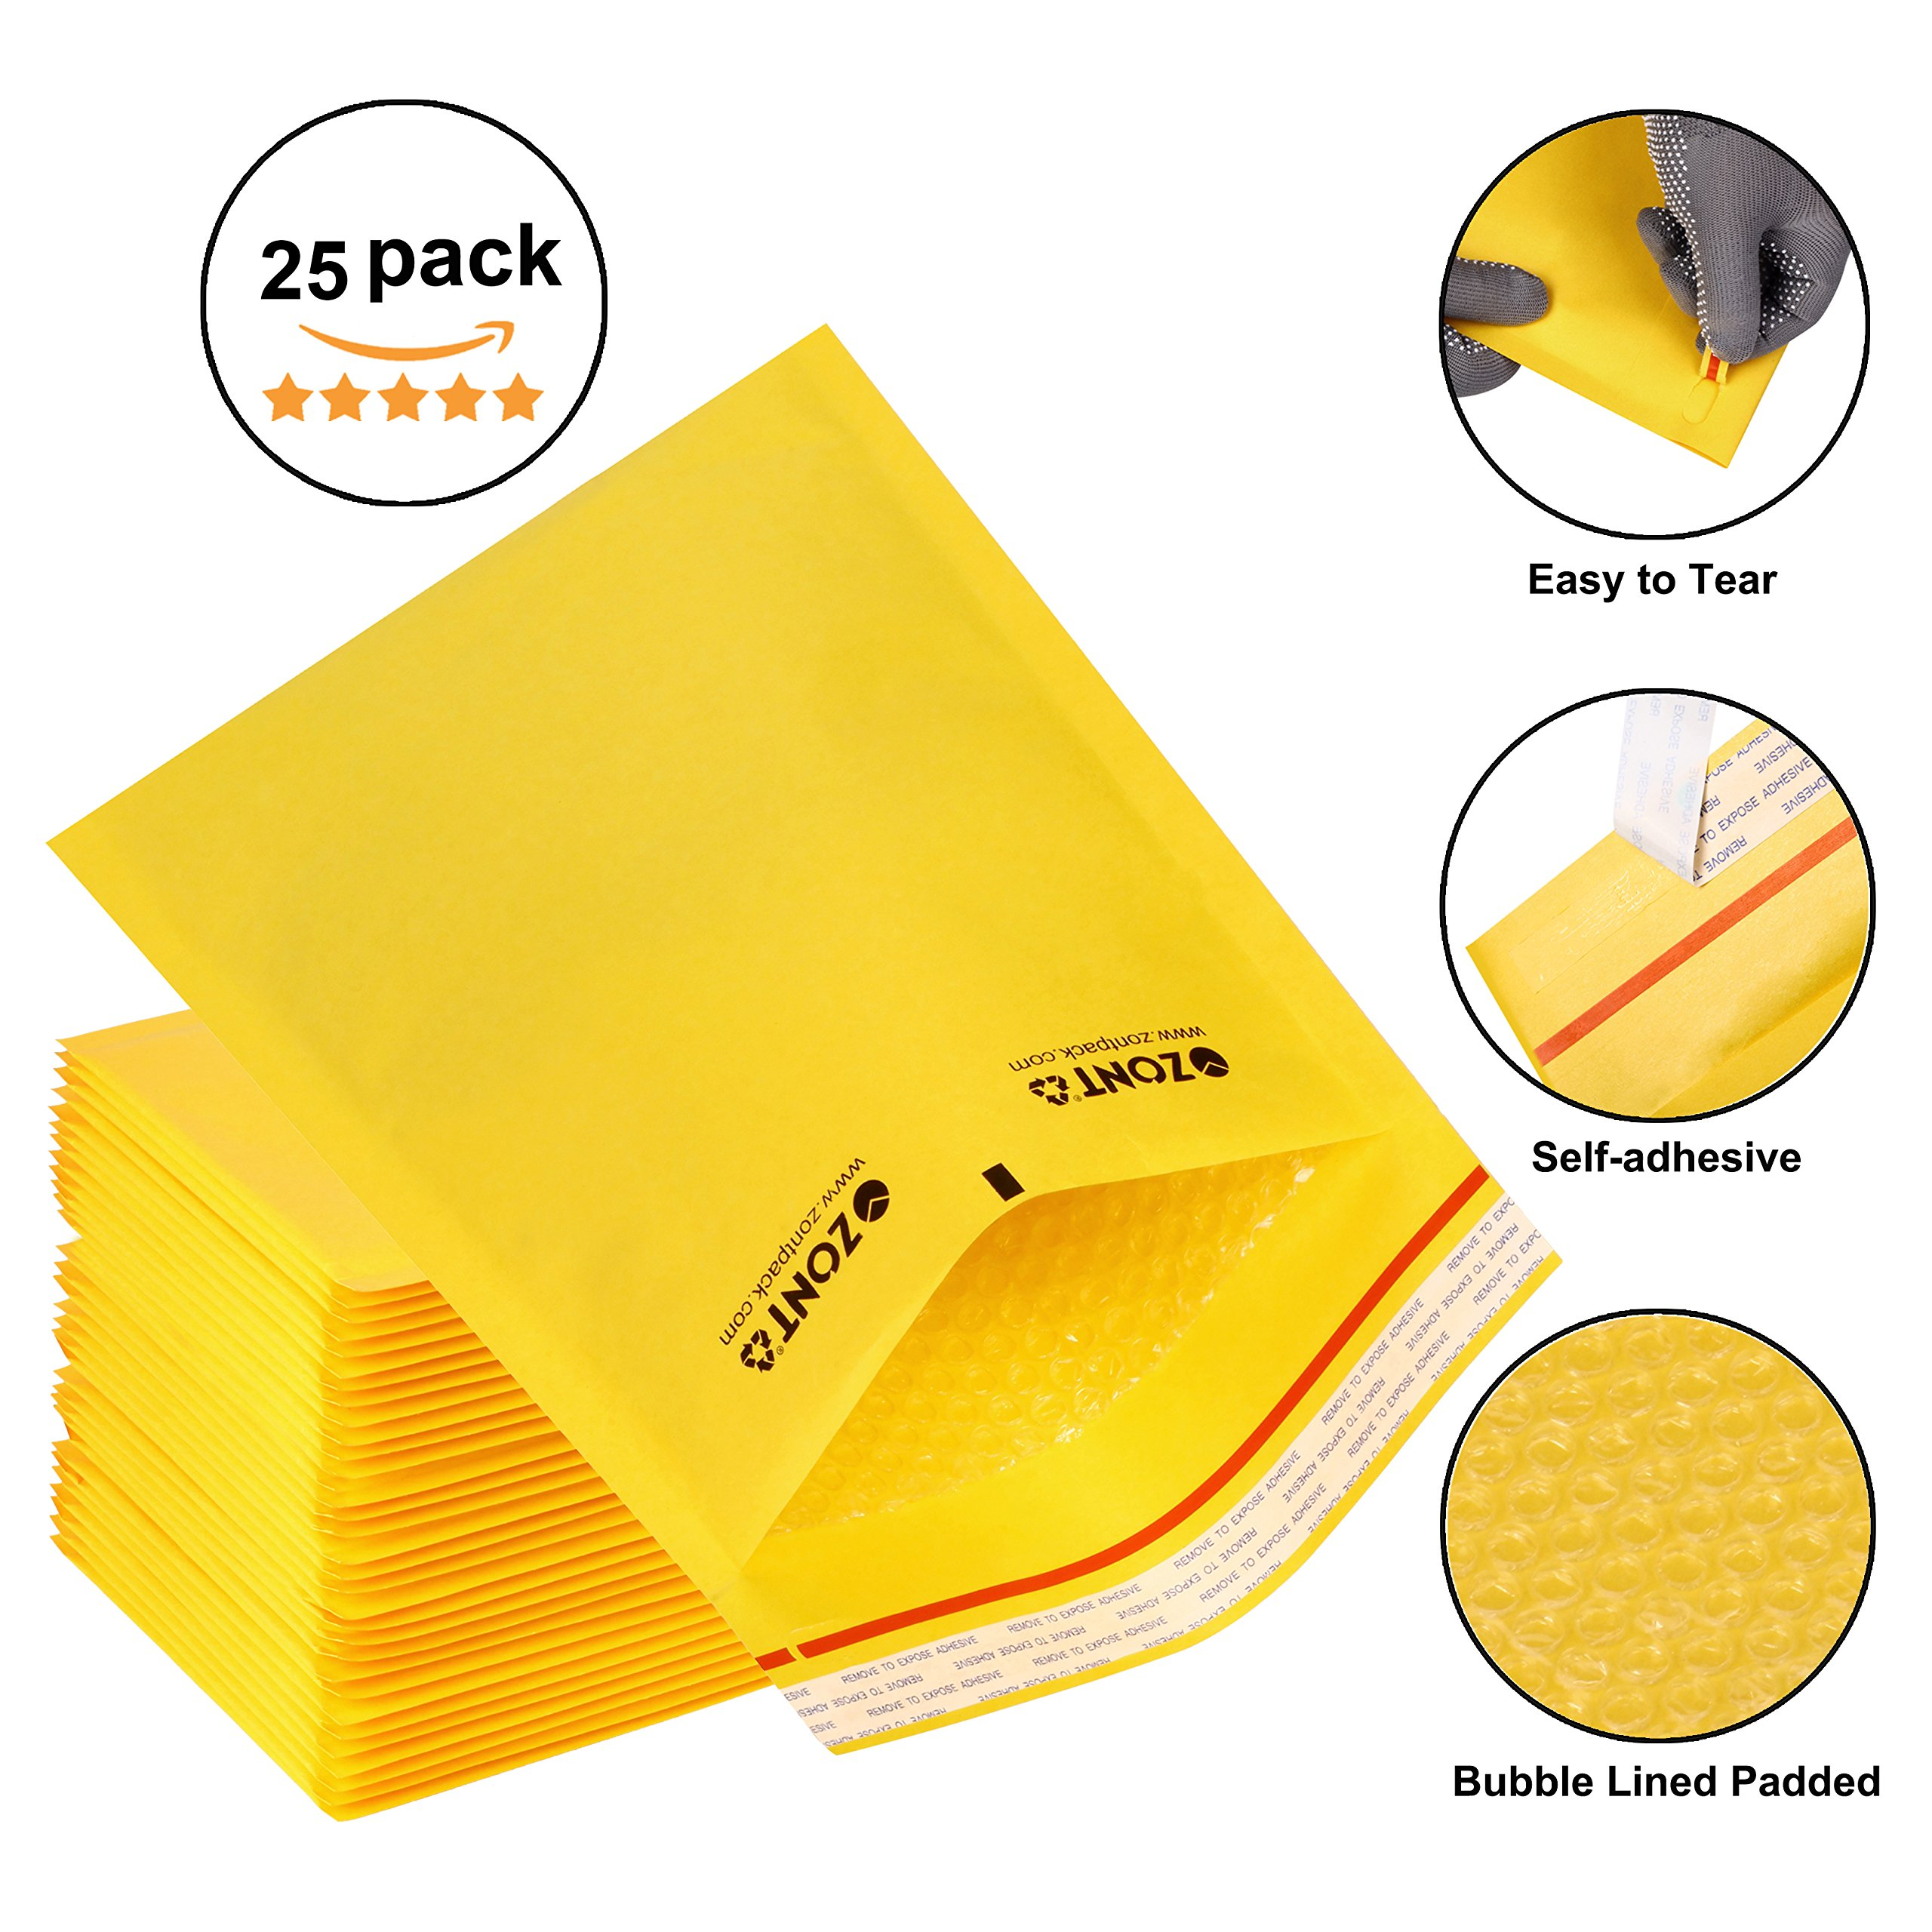 Zont Pack Golden Kraft Bubble Mailers, Self-adhesive Strip Envelope Mailers, Bubble Lined Padded Envelopes With Easy Tear Strip, Lightweight Mailing Envelopes, Box of 25 (10.5 x 15)